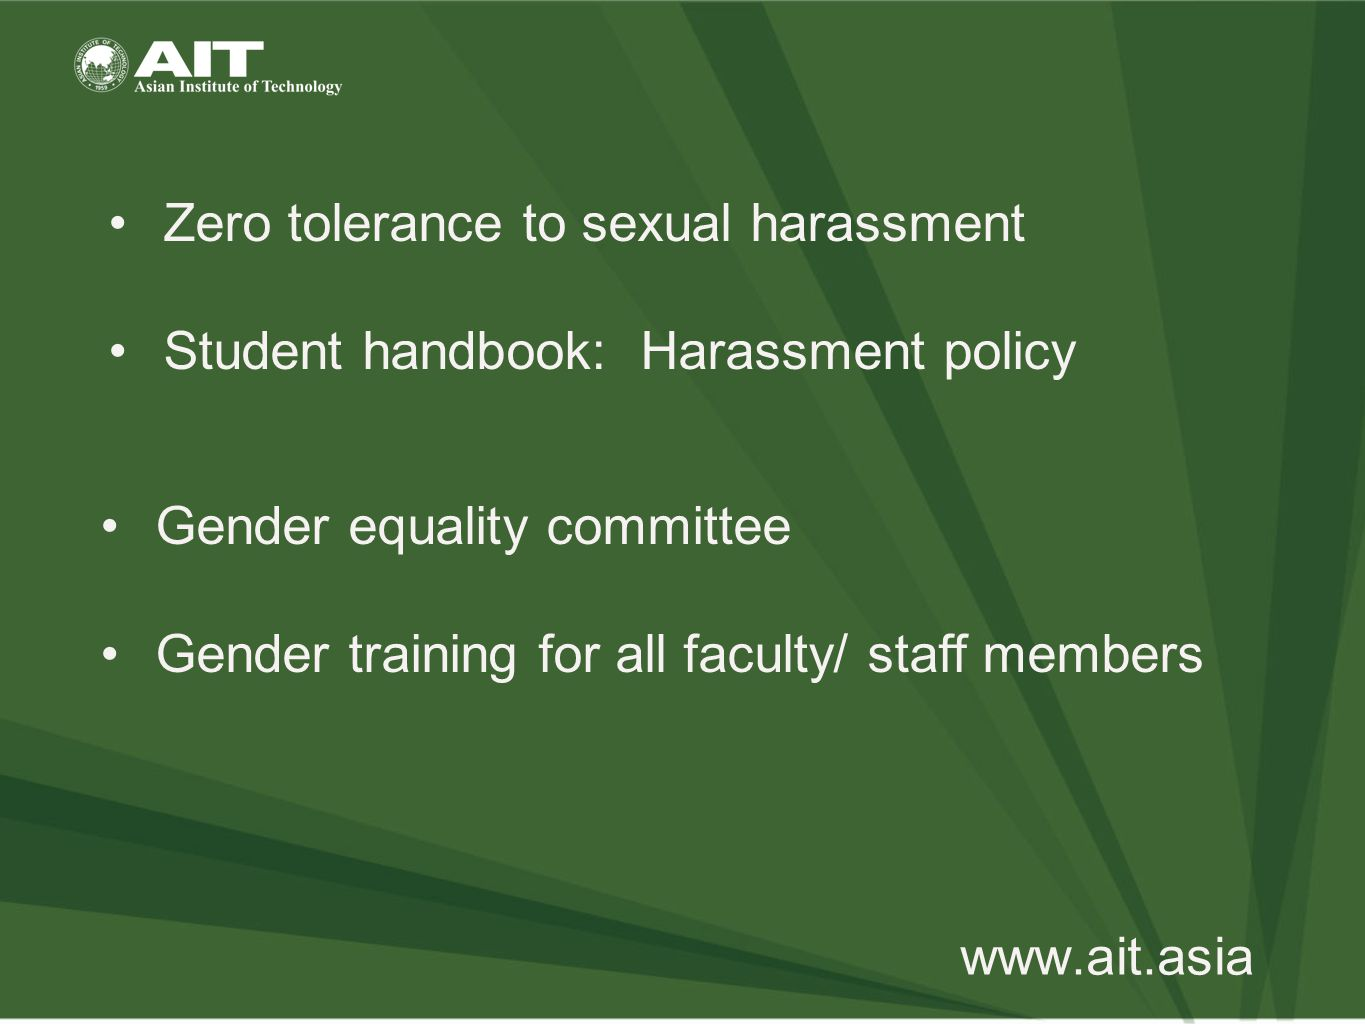 www.ait.asia Zero tolerance to sexual harassment Student handbook: Harassment policy Gender equality committee Gender training for all faculty/ staff members